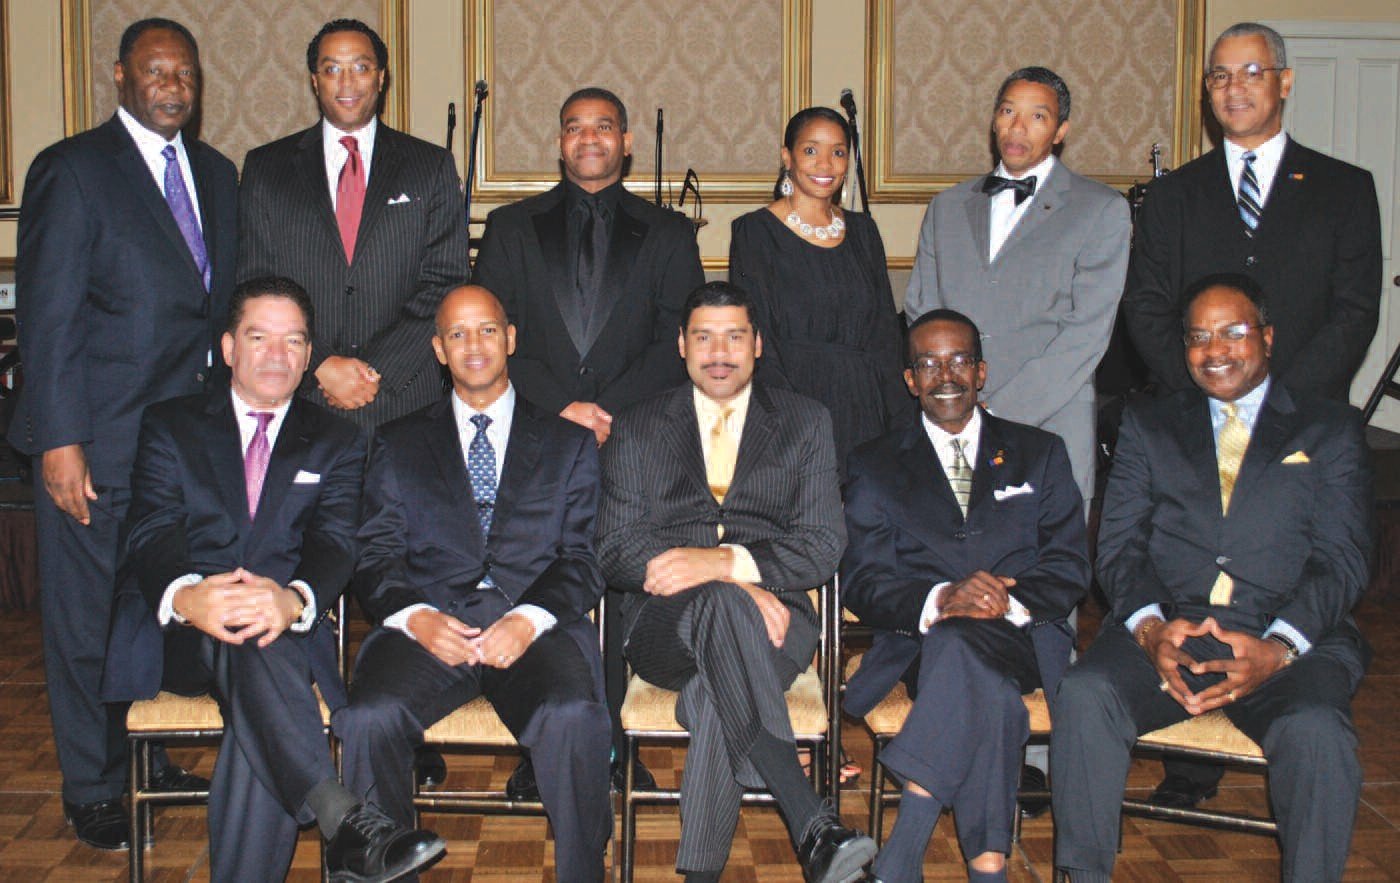 The Directors of the National Bankers Association pose after they were installed by Robert E. James, President, Carver State Bank of Savannah: (Seated L to R) Michael Grant, President of the NBA, Washington, DC; Robert Cooper, Senior Counsel, One United Bank, Boston, MA; D. Doyle Mitchell, Jr., NBA Chairman and President, Industrial Bank. Washington, DC; James E. Young, President, Citizens Trust Bank, Atlanta, GA: and Tony James, Senior Vice President, ICBA Securities, Memphis, TN. (Standing L to R) Robert E. James; Neil Wright, President, First Tuskegee Bank, Montgomery, AL; Erbert Johnson, President, North Milwaukee State Bank, Milwaukee, WI; Cynthia N. Day, Senior Vice President, Citizens Trust Bank, Atlanta, GA; Preston D. Pinkett, III, President, City National Bank of New Jersey and Sidney King, Liberty Bank and Trust, New Orleans, LA.